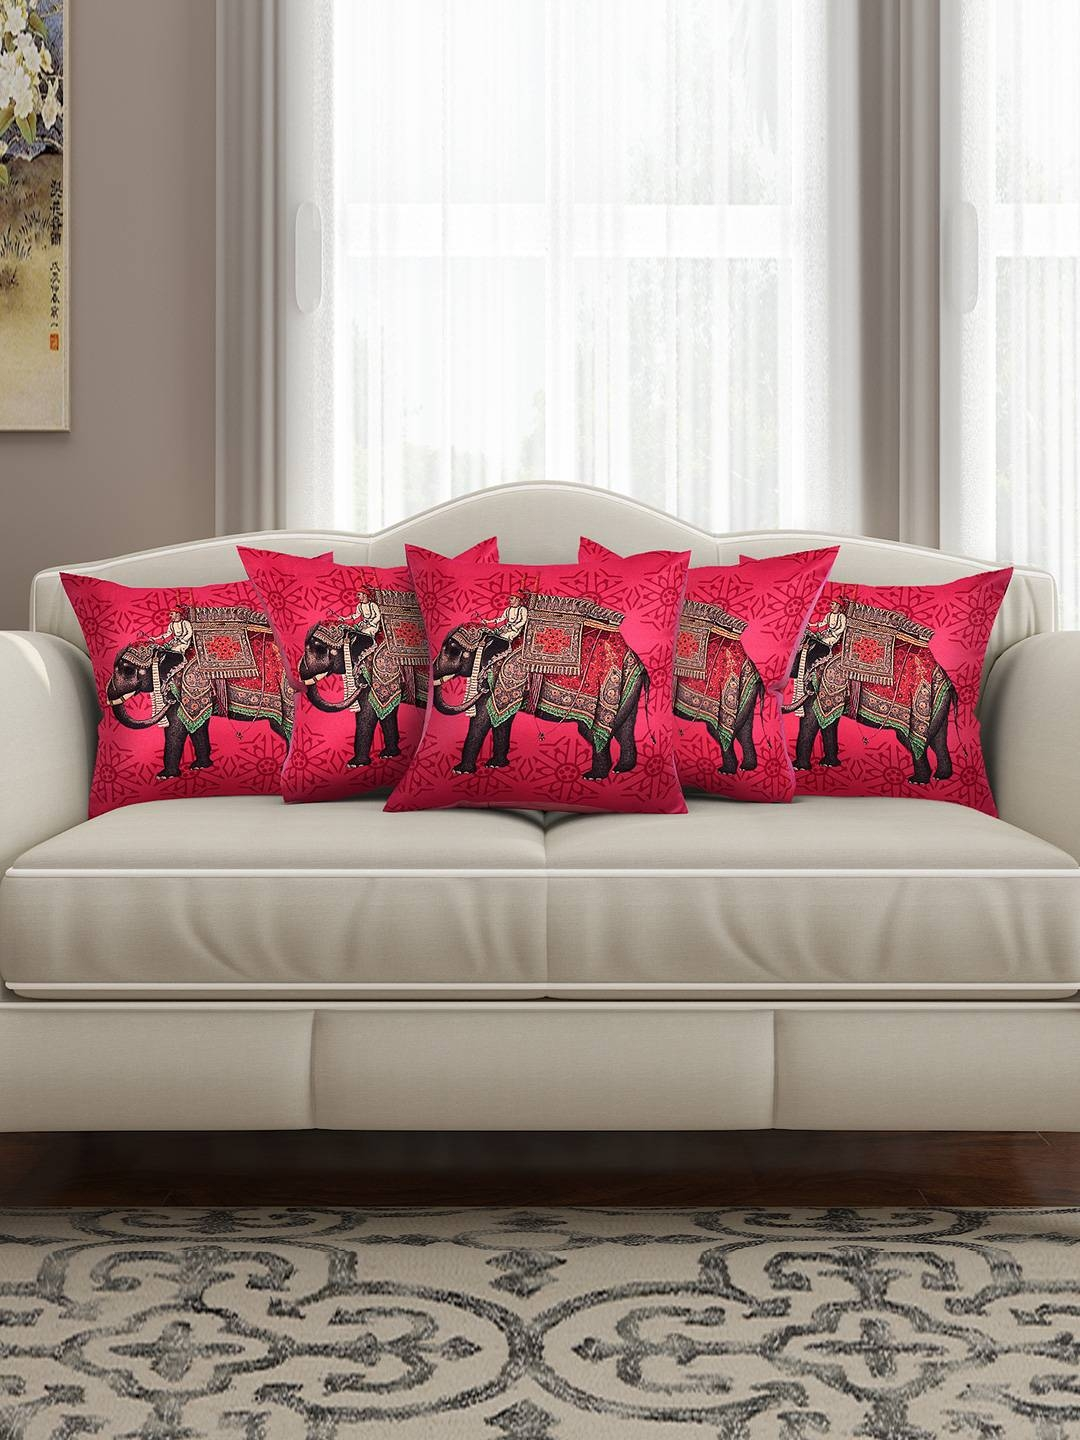 Cushion Covers - Buy Cushion Cover Online In India | Myntra intended for Sofa Cushion Covers (Image 3 of 15)